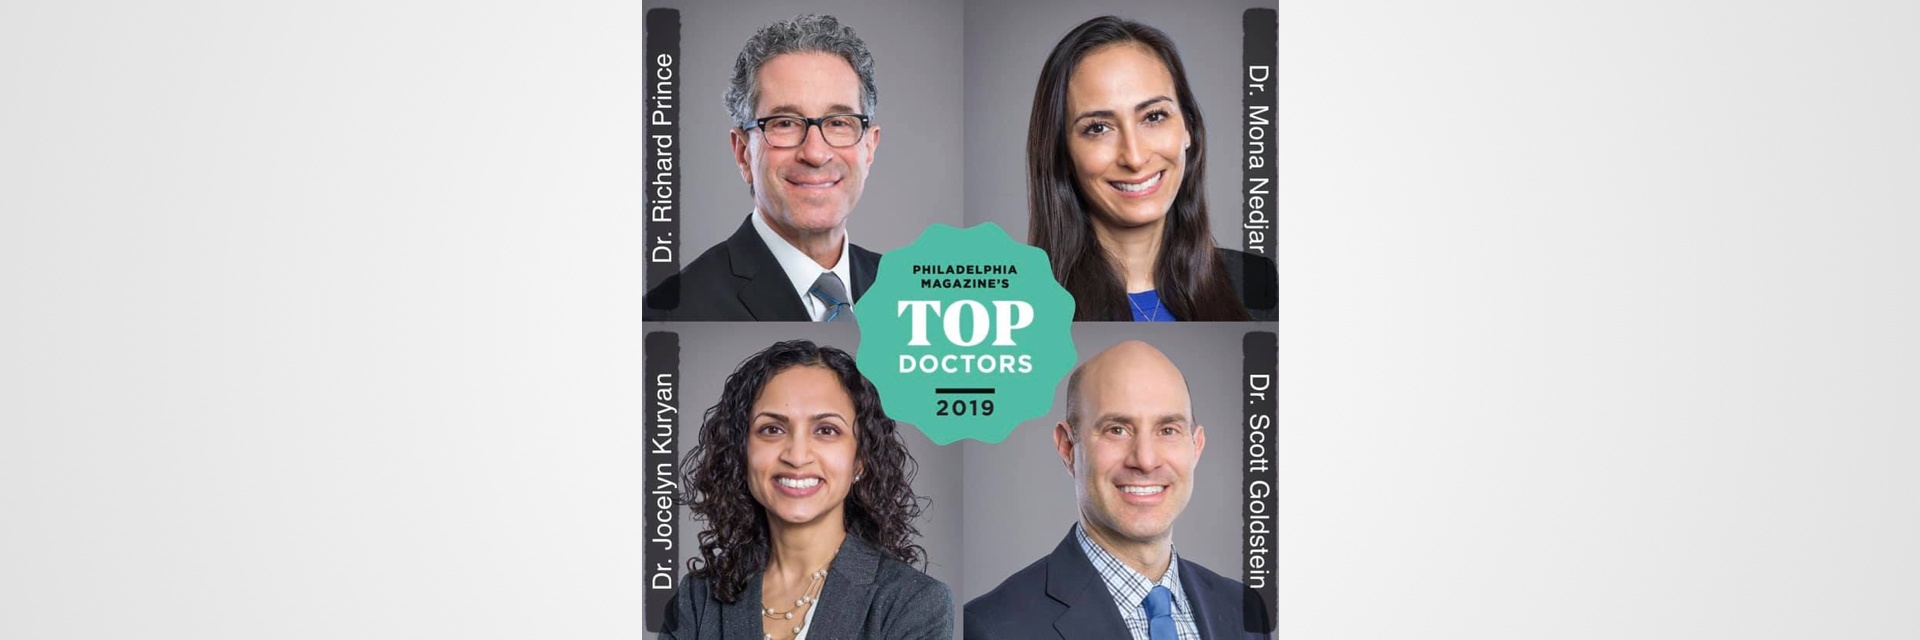 Philadelphia Magazine's Top Doctors™ 2019 in Ophthalmology Image 1